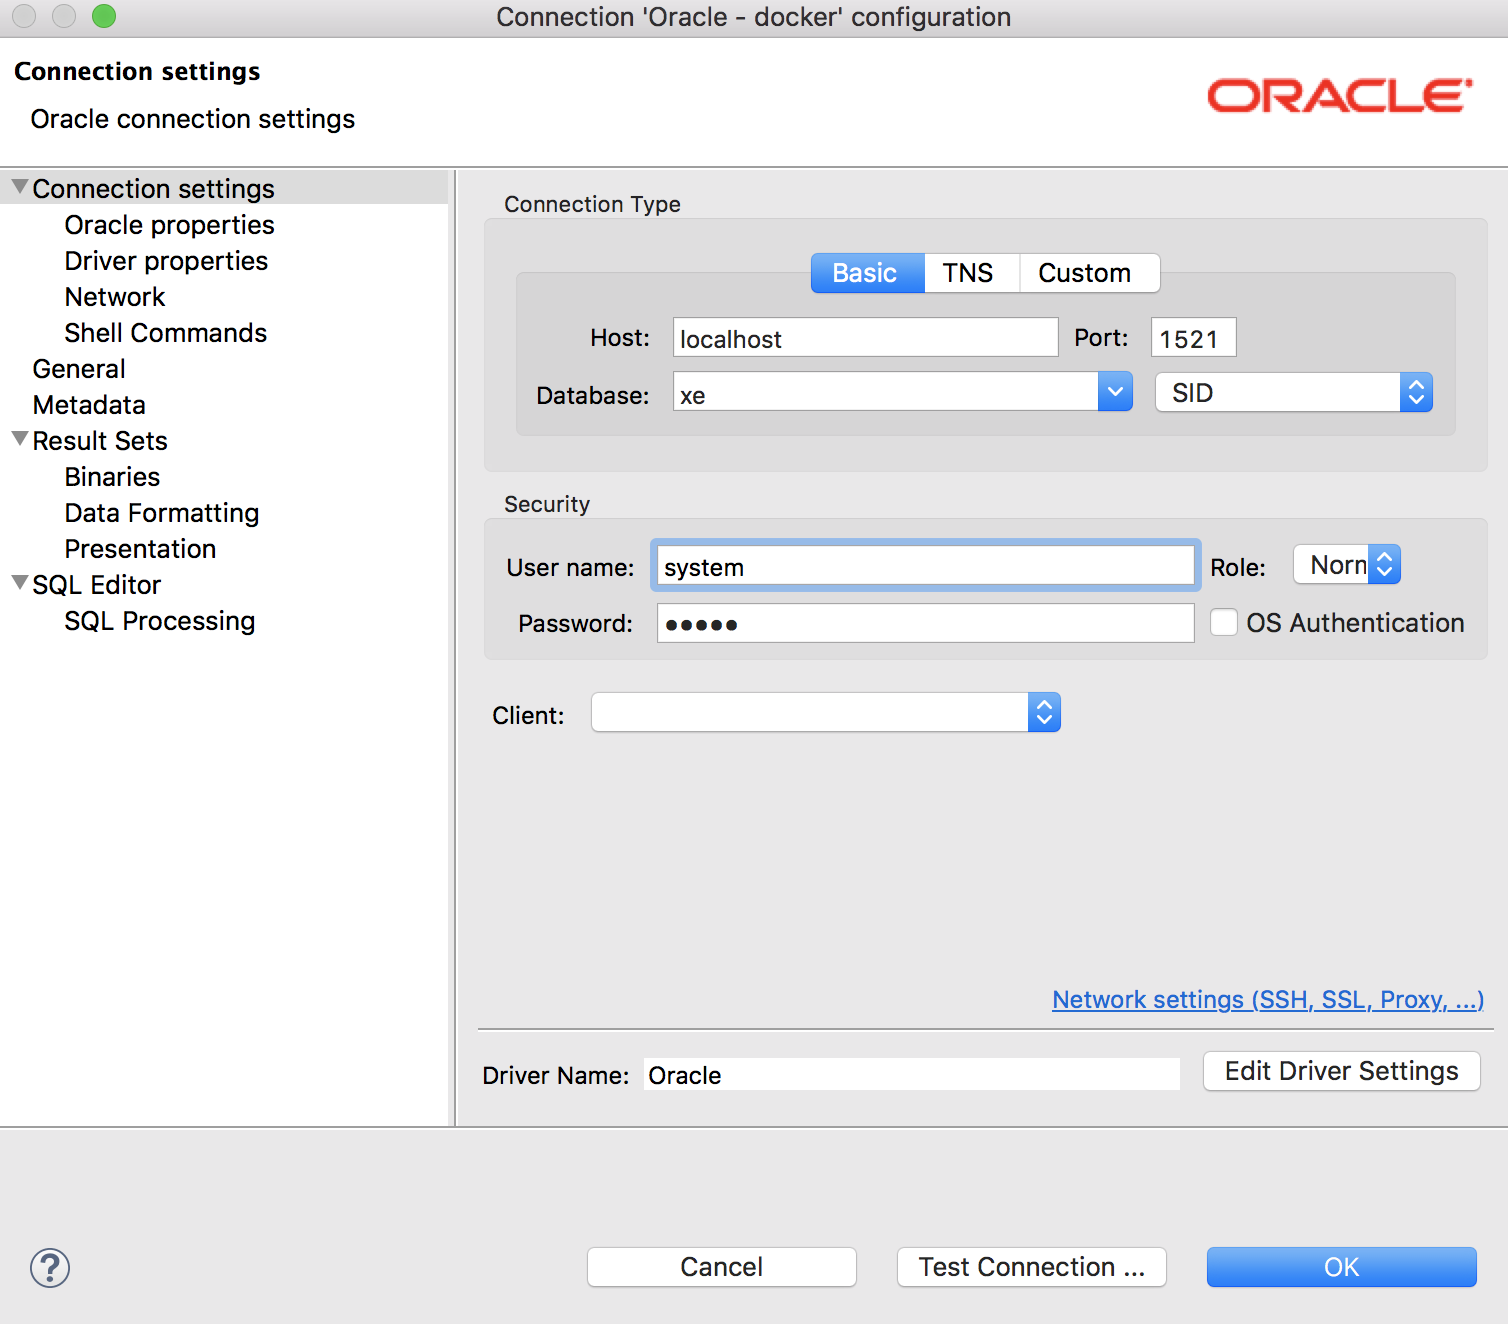 How to Install Oracle Database via Docker in Mac and Connect